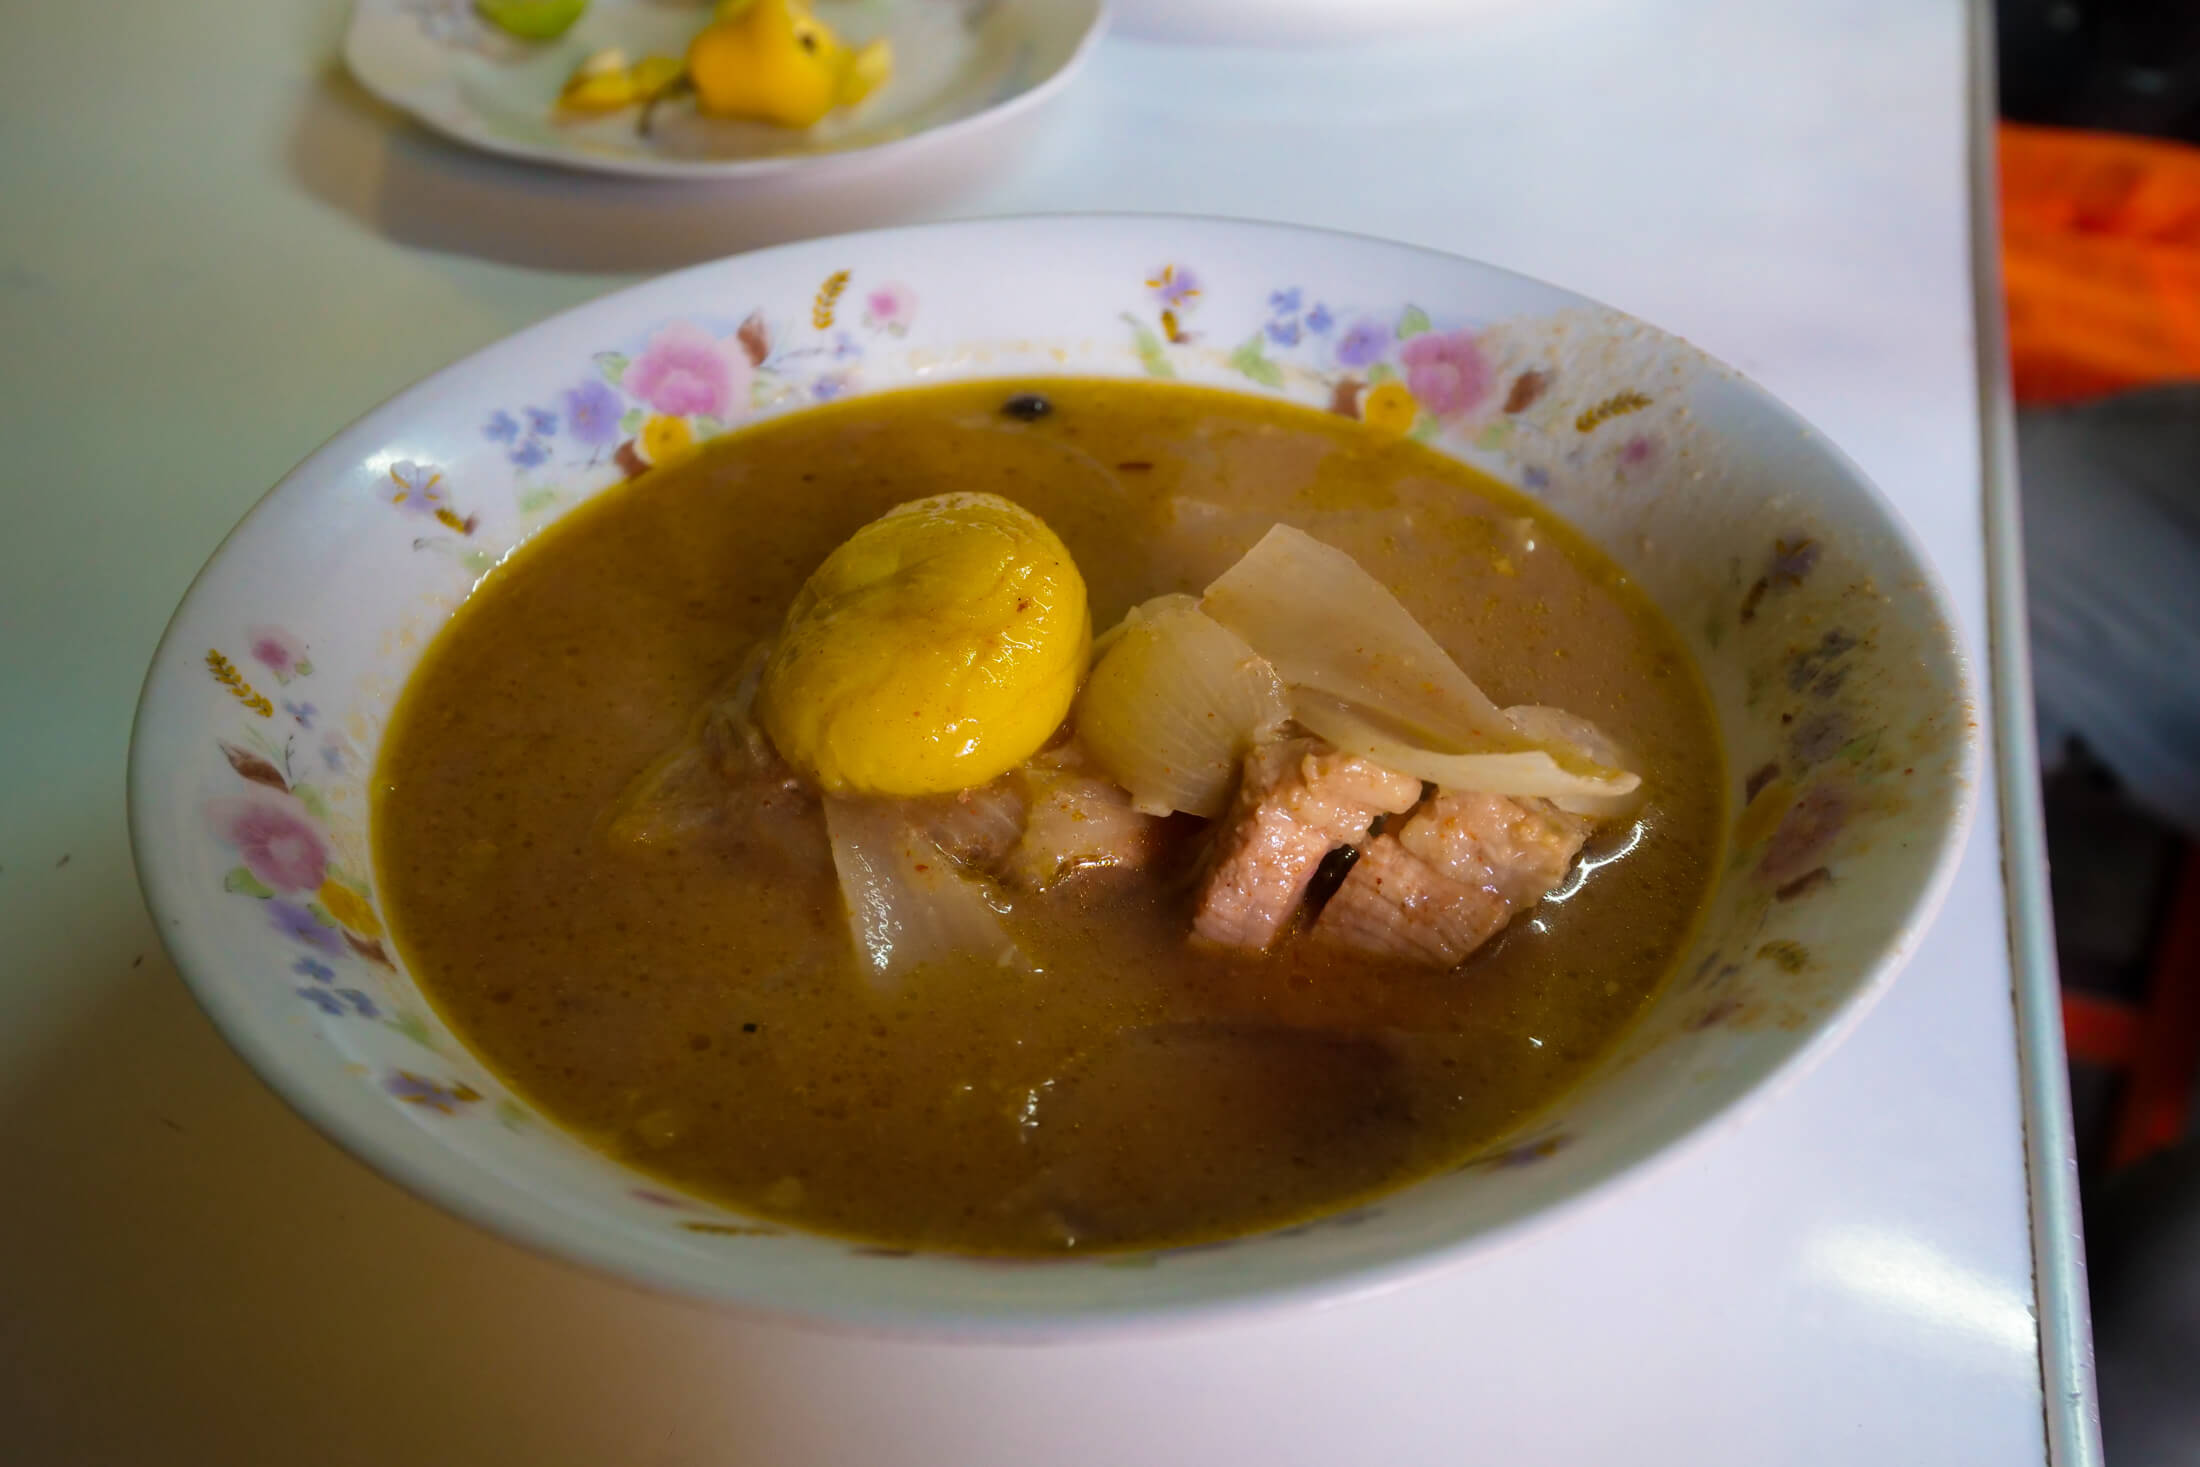 Adobo, one of Peru's most delicious high-altitude soups